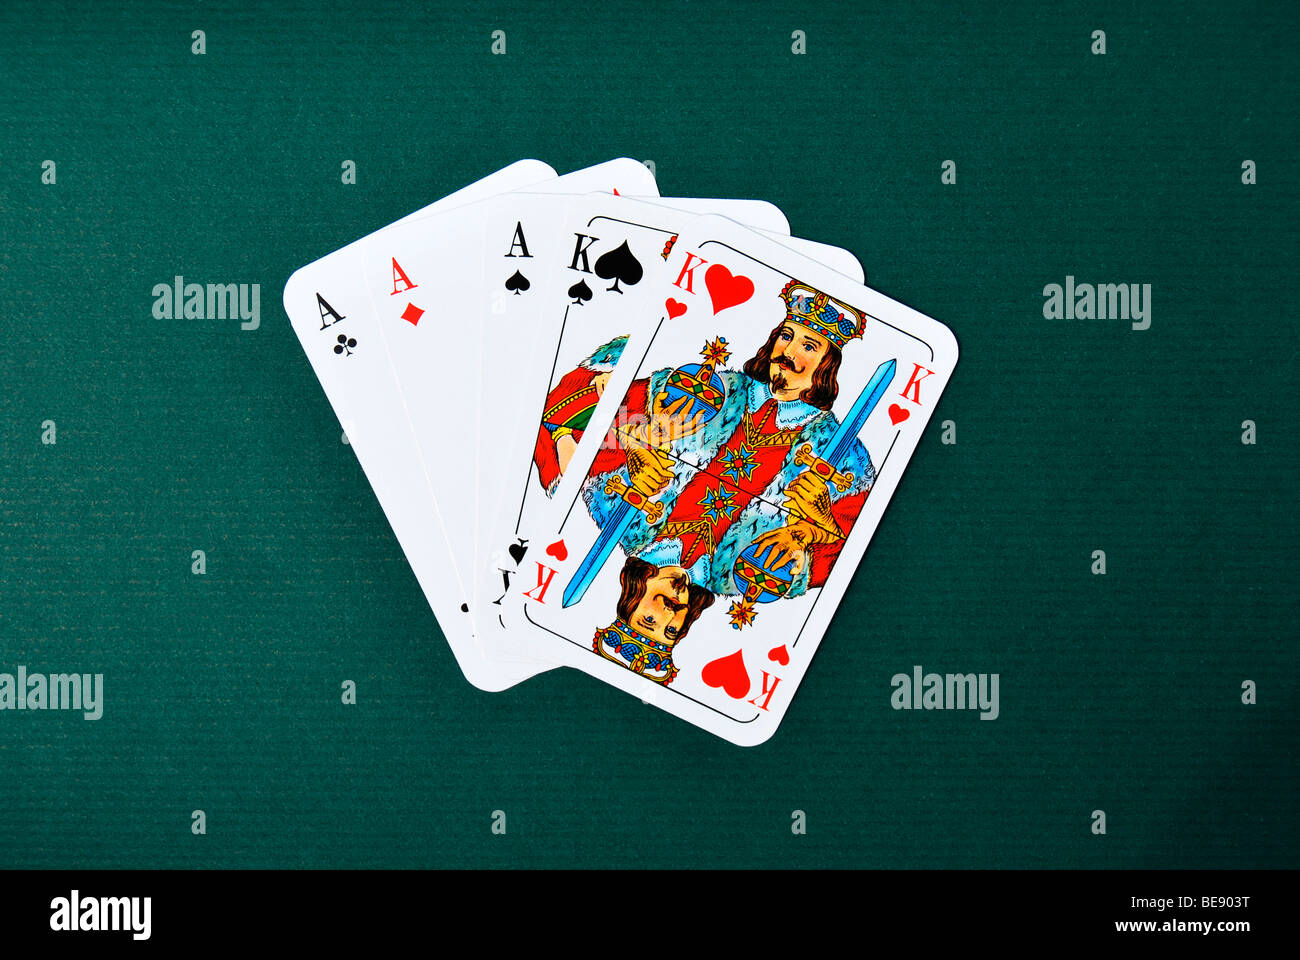 Playing cards, poker, full house - Stock Image